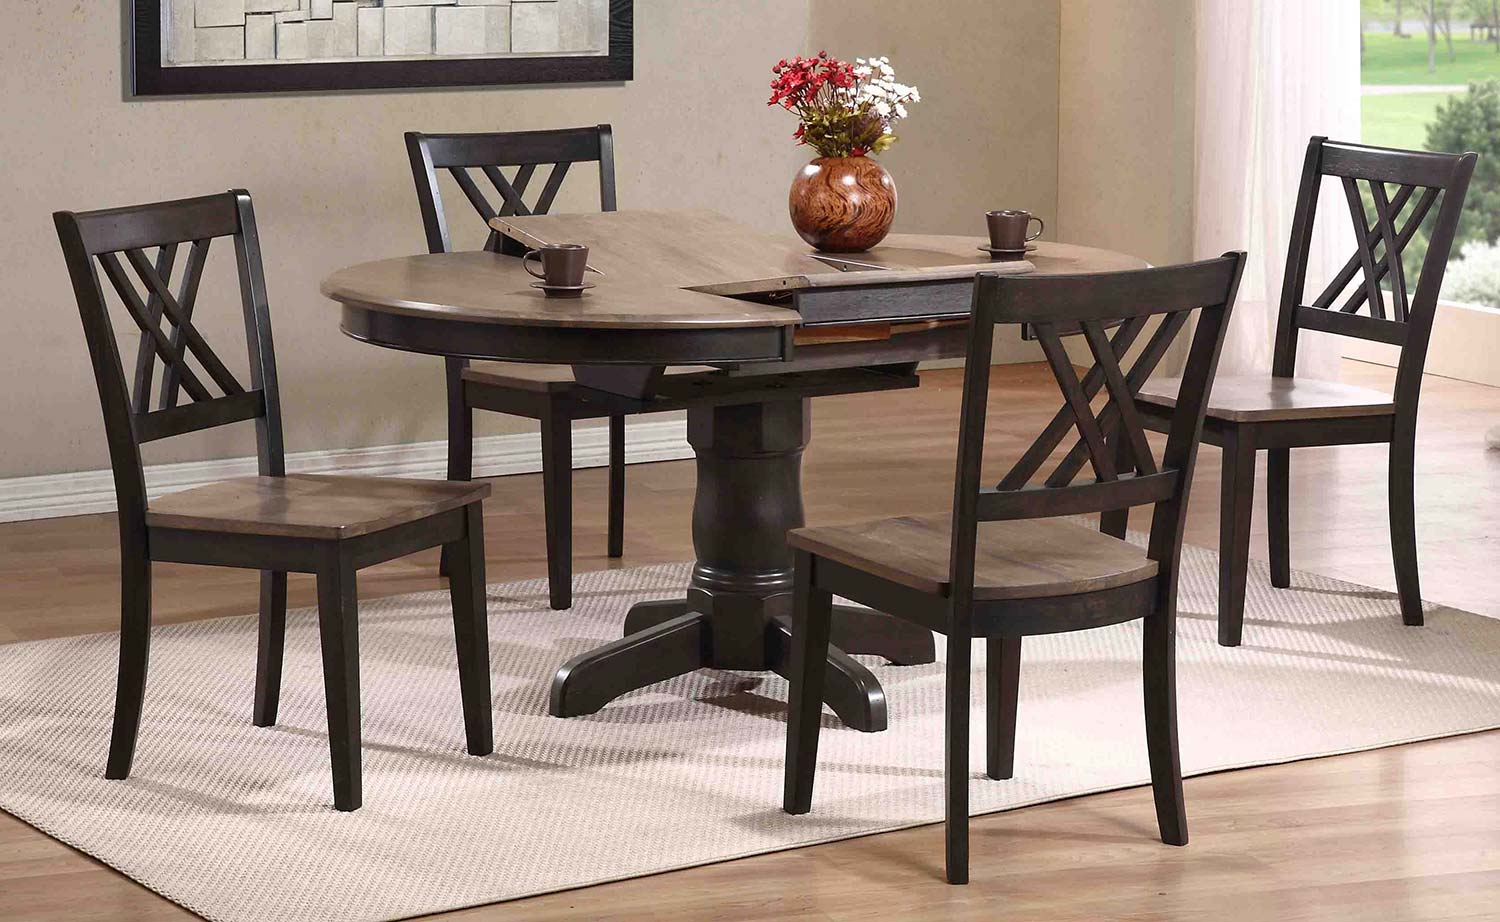 Iconic Furniture Dining Set - Grey Stone/Black Stone